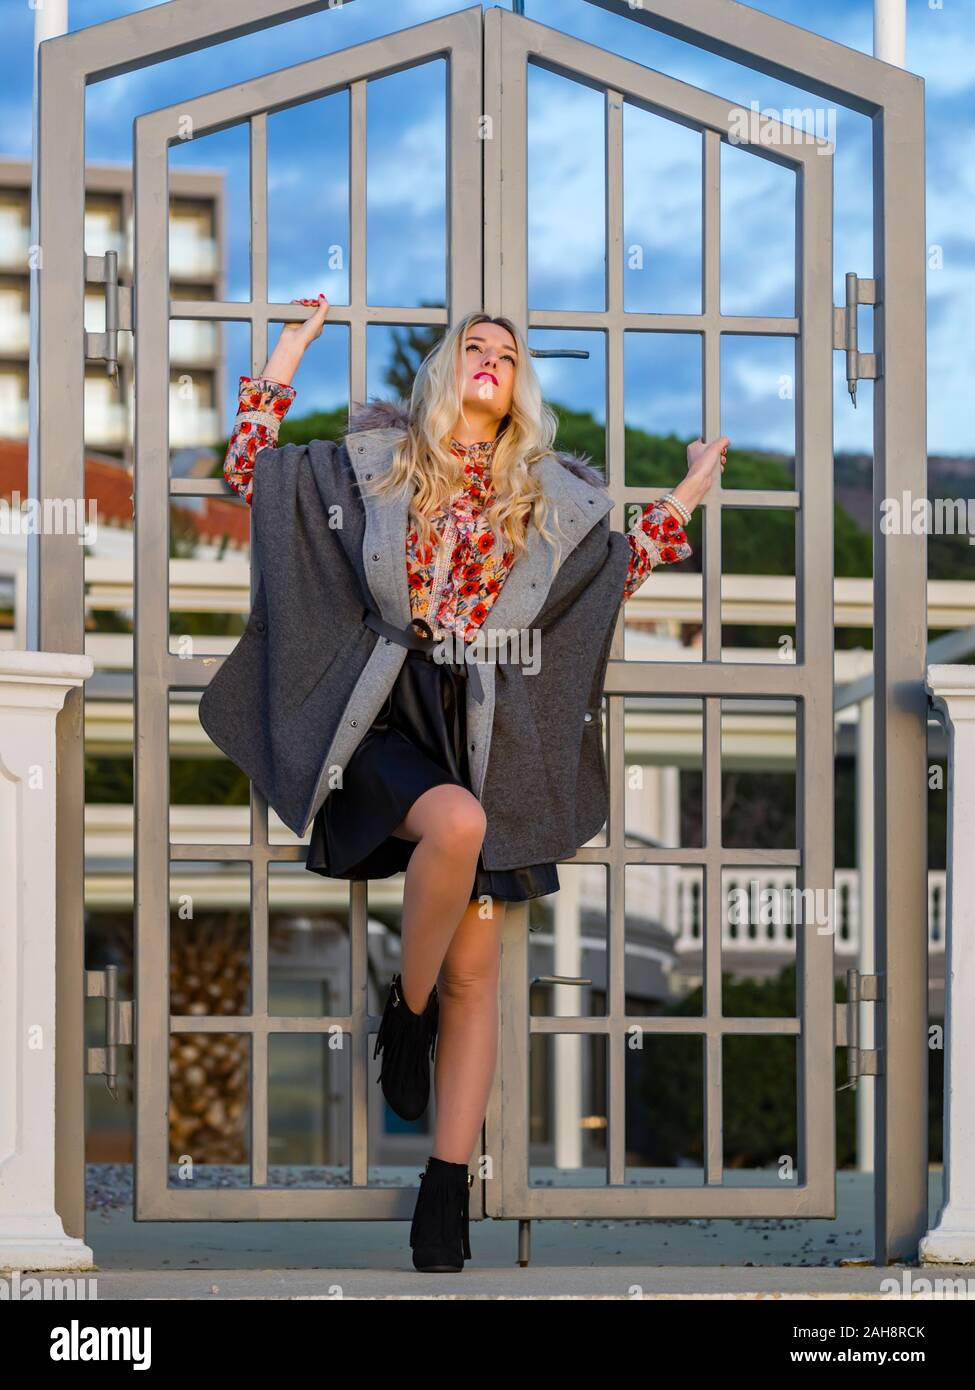 Fanciful blonde young lady spreading on metal fence door entrance to her back serious looking up upwards daydreaming day-dreaming daydreamer Stock Photo